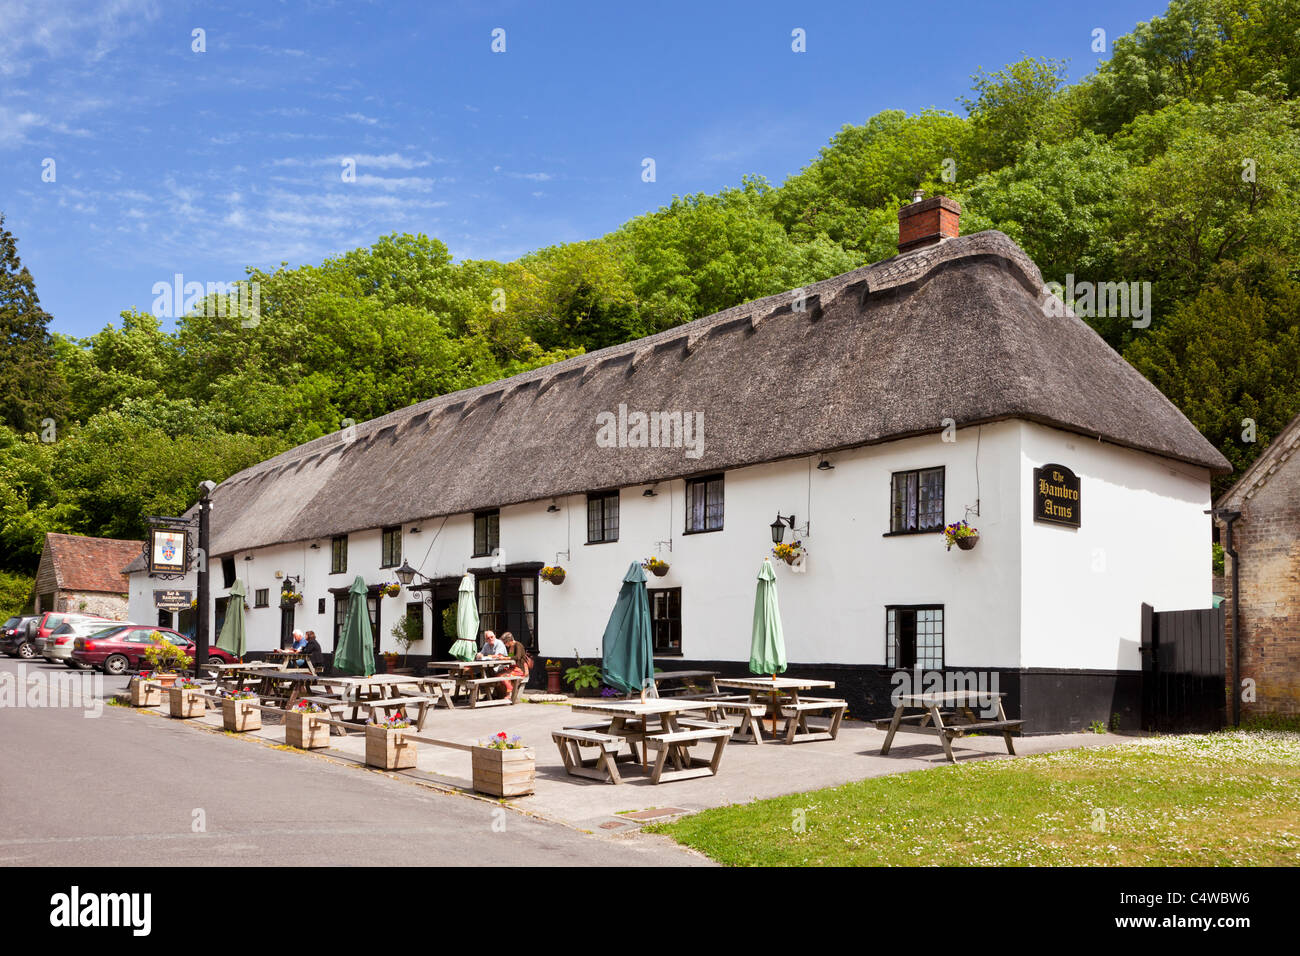 The Hambro Arms village pub with thatched roof in the pretty English village of Milton Abbas, Dorset, England, UK - Stock Image